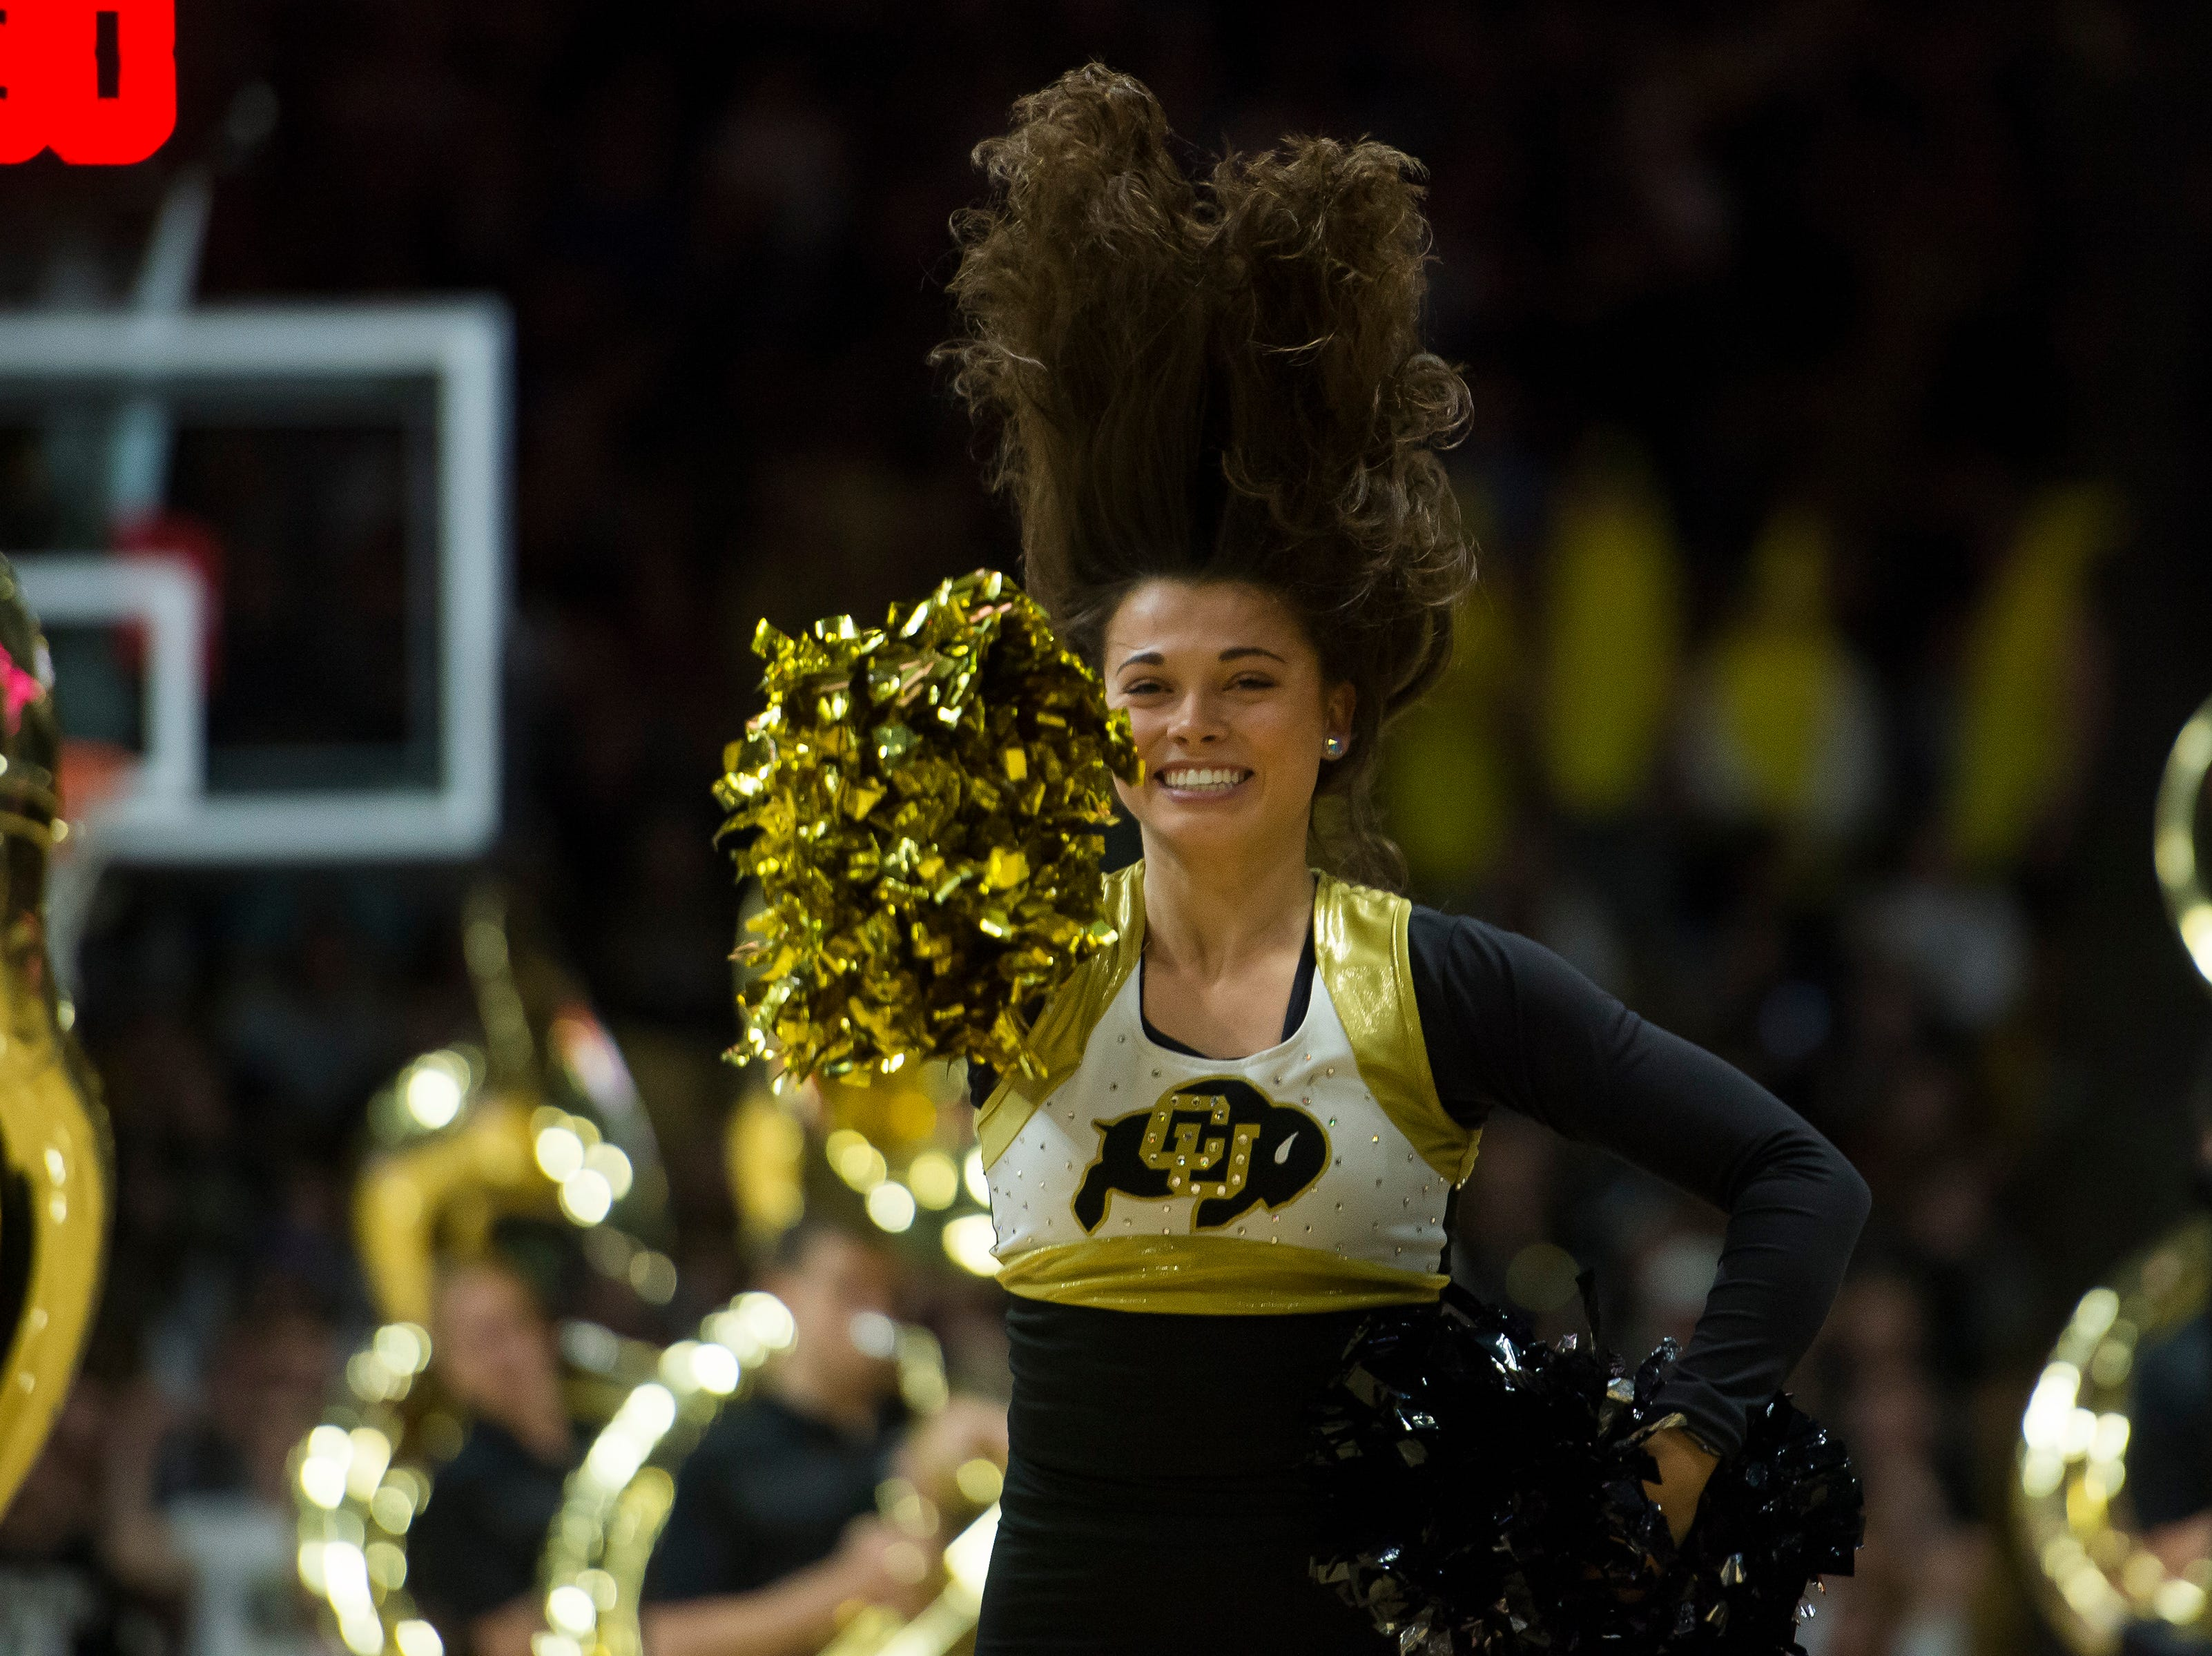 University of Colorado cheerleaders dance during a break in the action of a game against Colorado State University on Saturday, Dec. 1, 2018, at the CU Event Center in Boulder, Colo.